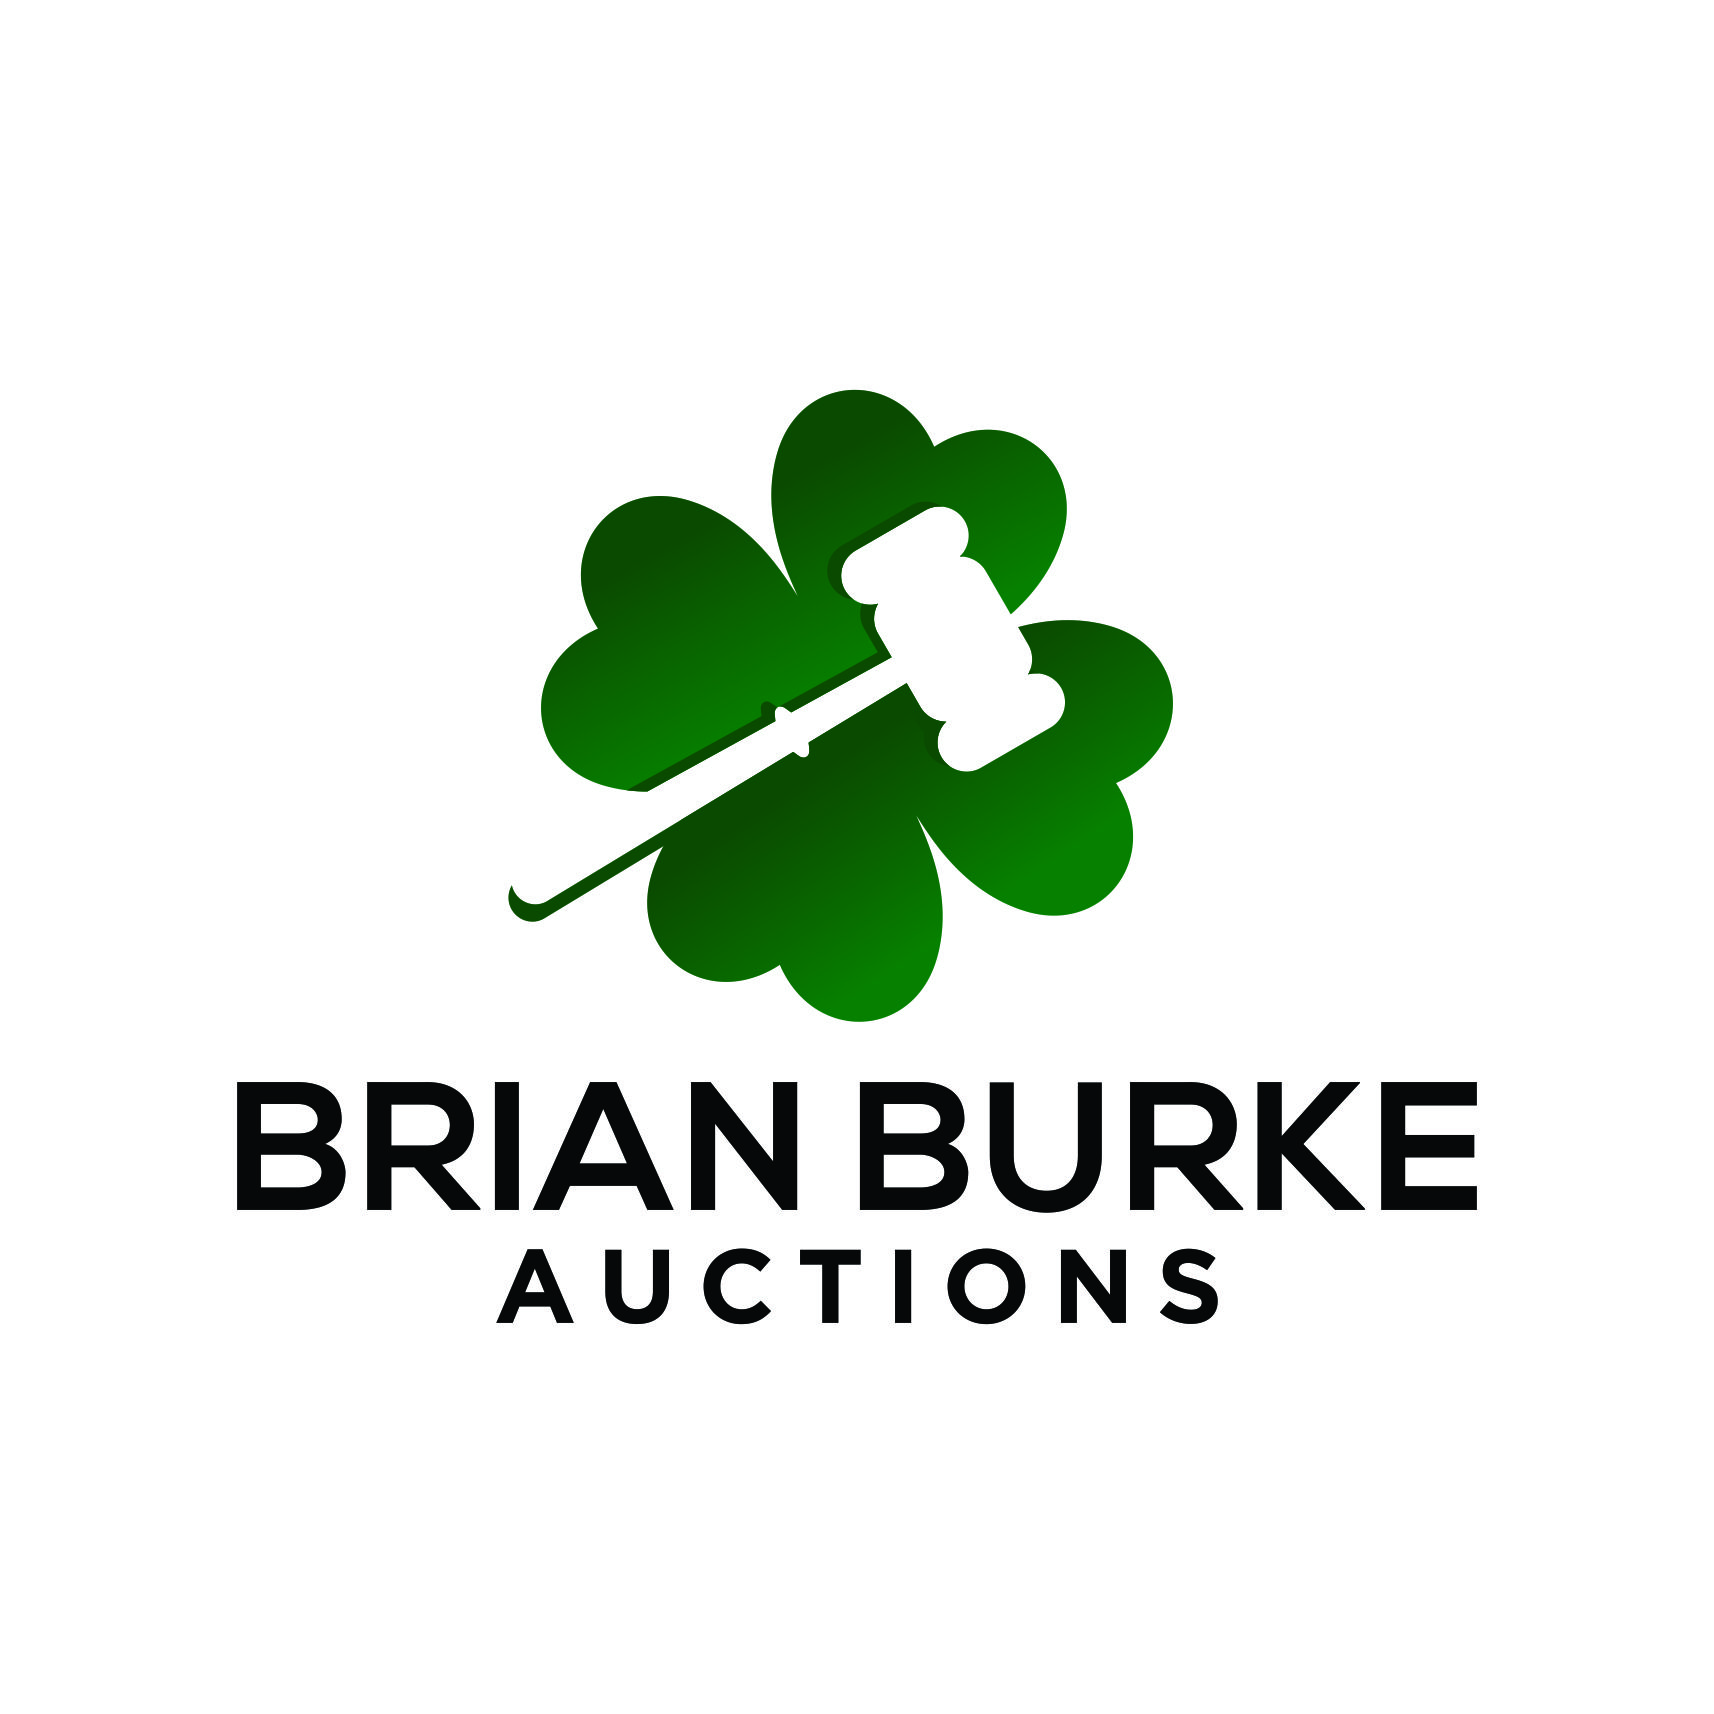 Burke's Gun Shop, LLC dba Shamrock Auction Services, LLC